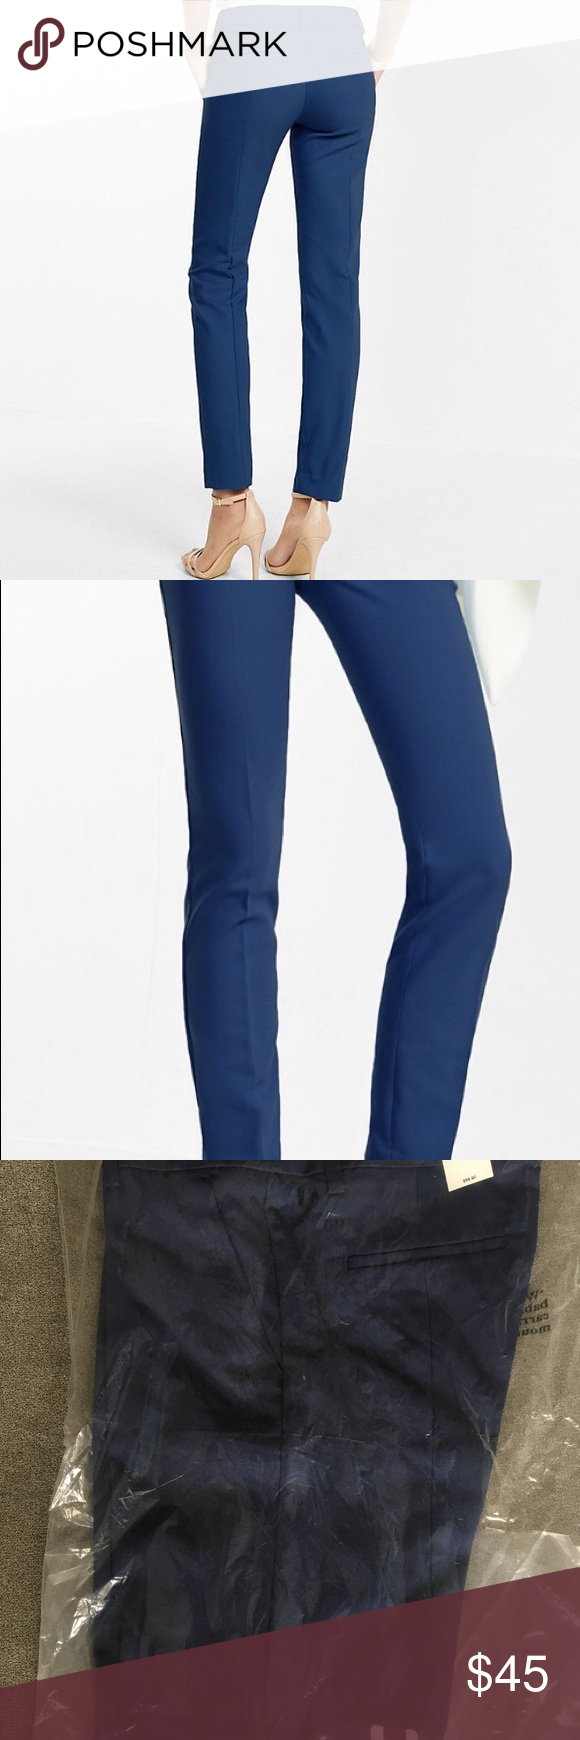 Express columnist ankle pant (navy/dark blue) Size 0 (fits like a 2) regular Mid Rise Columnist Ankle Pant. Dress pants/slacks. Color: Ensign Blue. New w/tags. Fantastic fabric quality and color. Does not fade or wrinkle easily. Favorite. Pants. Ever. Loved them so much I bought 2, just never needed to bust out the second pair (two yes later)! Pictures of model/description from Express website. Express Pants Ankle & Cropped